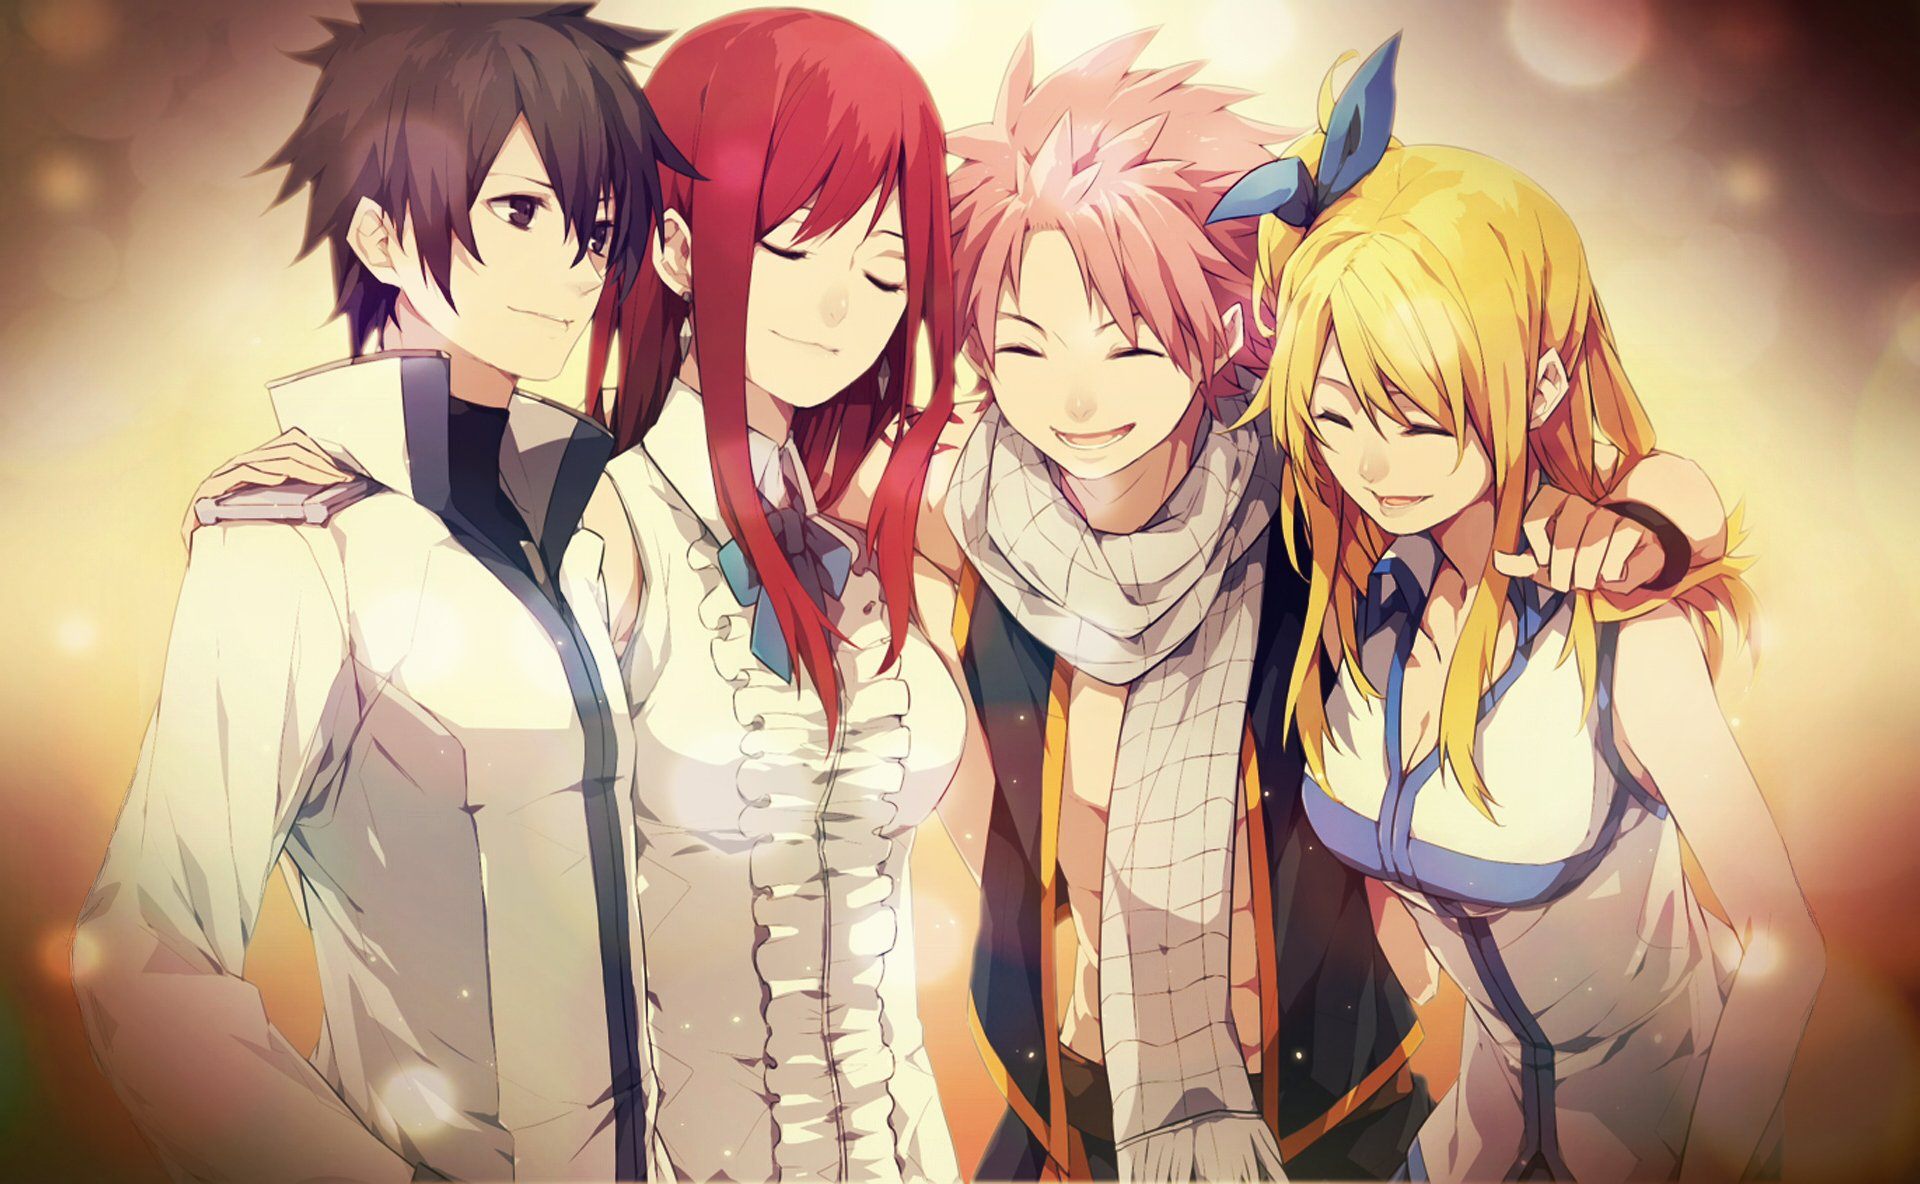 819 Fairy Tail HD Wallpapers   Backgrounds - Wallpaper Abyss